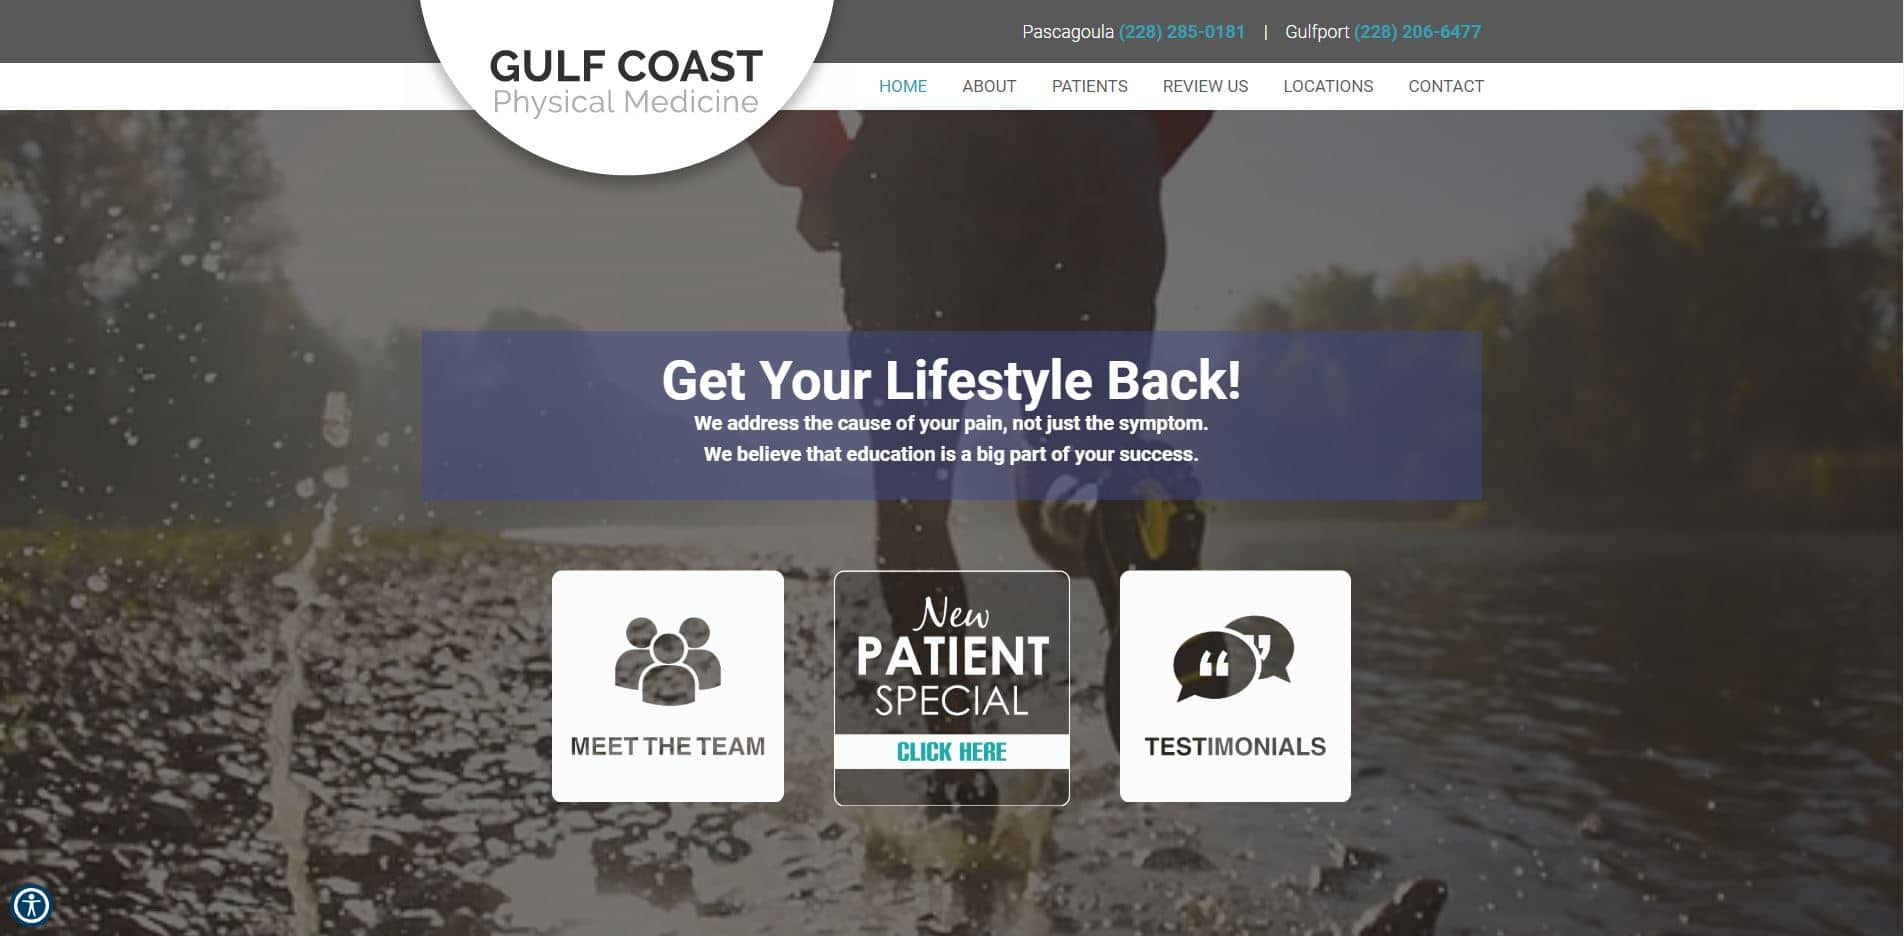 Chiropractor in Pascagoula